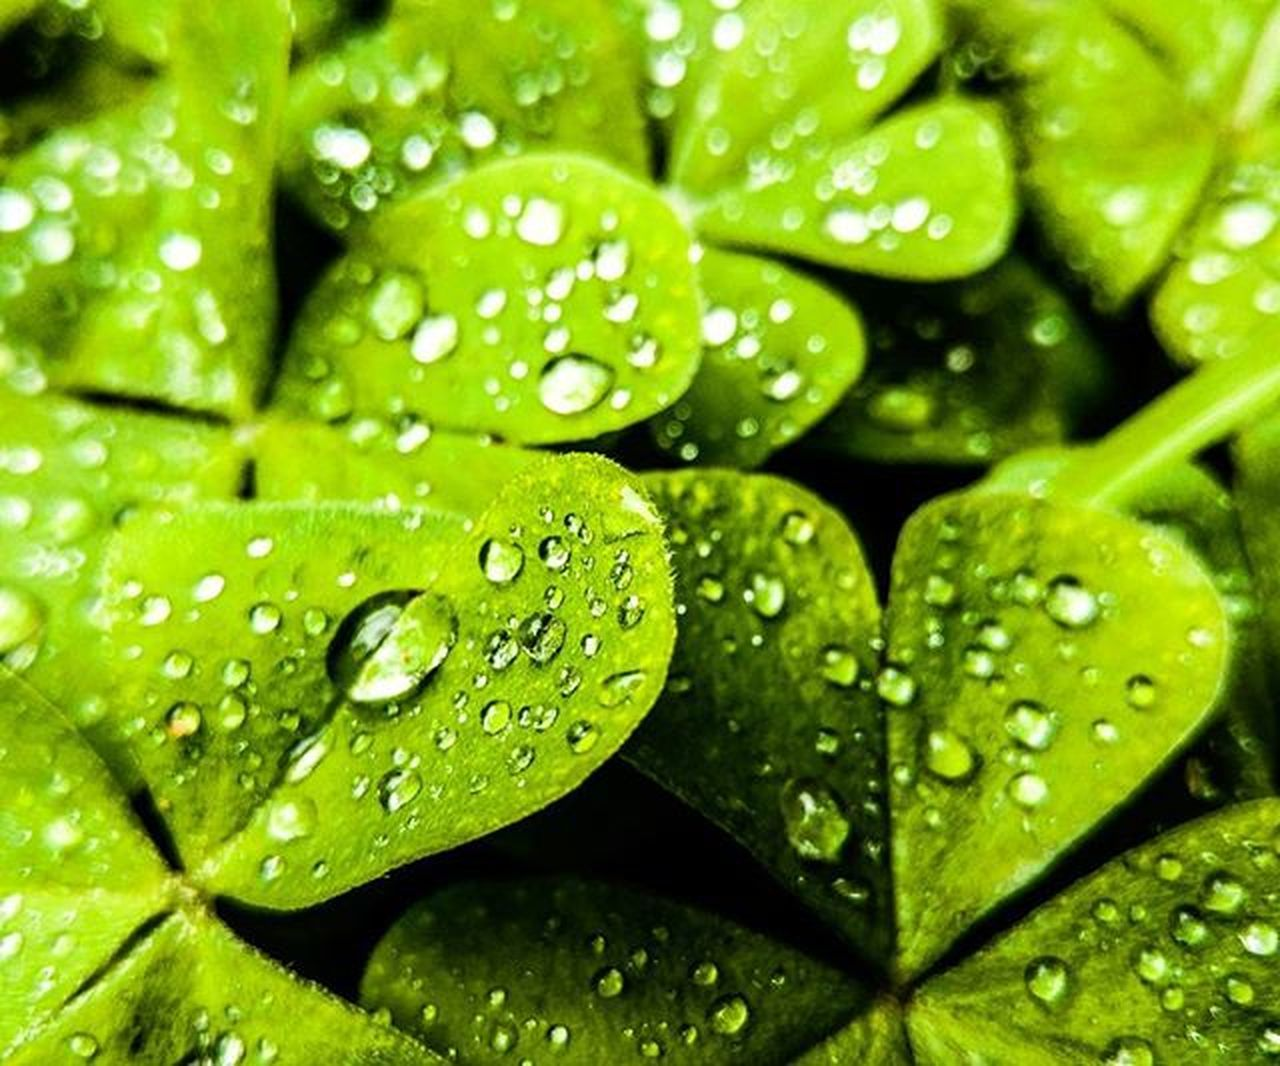 drop, water, green color, freshness, wet, leaf, raindrop, backgrounds, full frame, close-up, nature, droplet, no people, fragility, purity, plant, growth, day, food, beauty in nature, outdoors